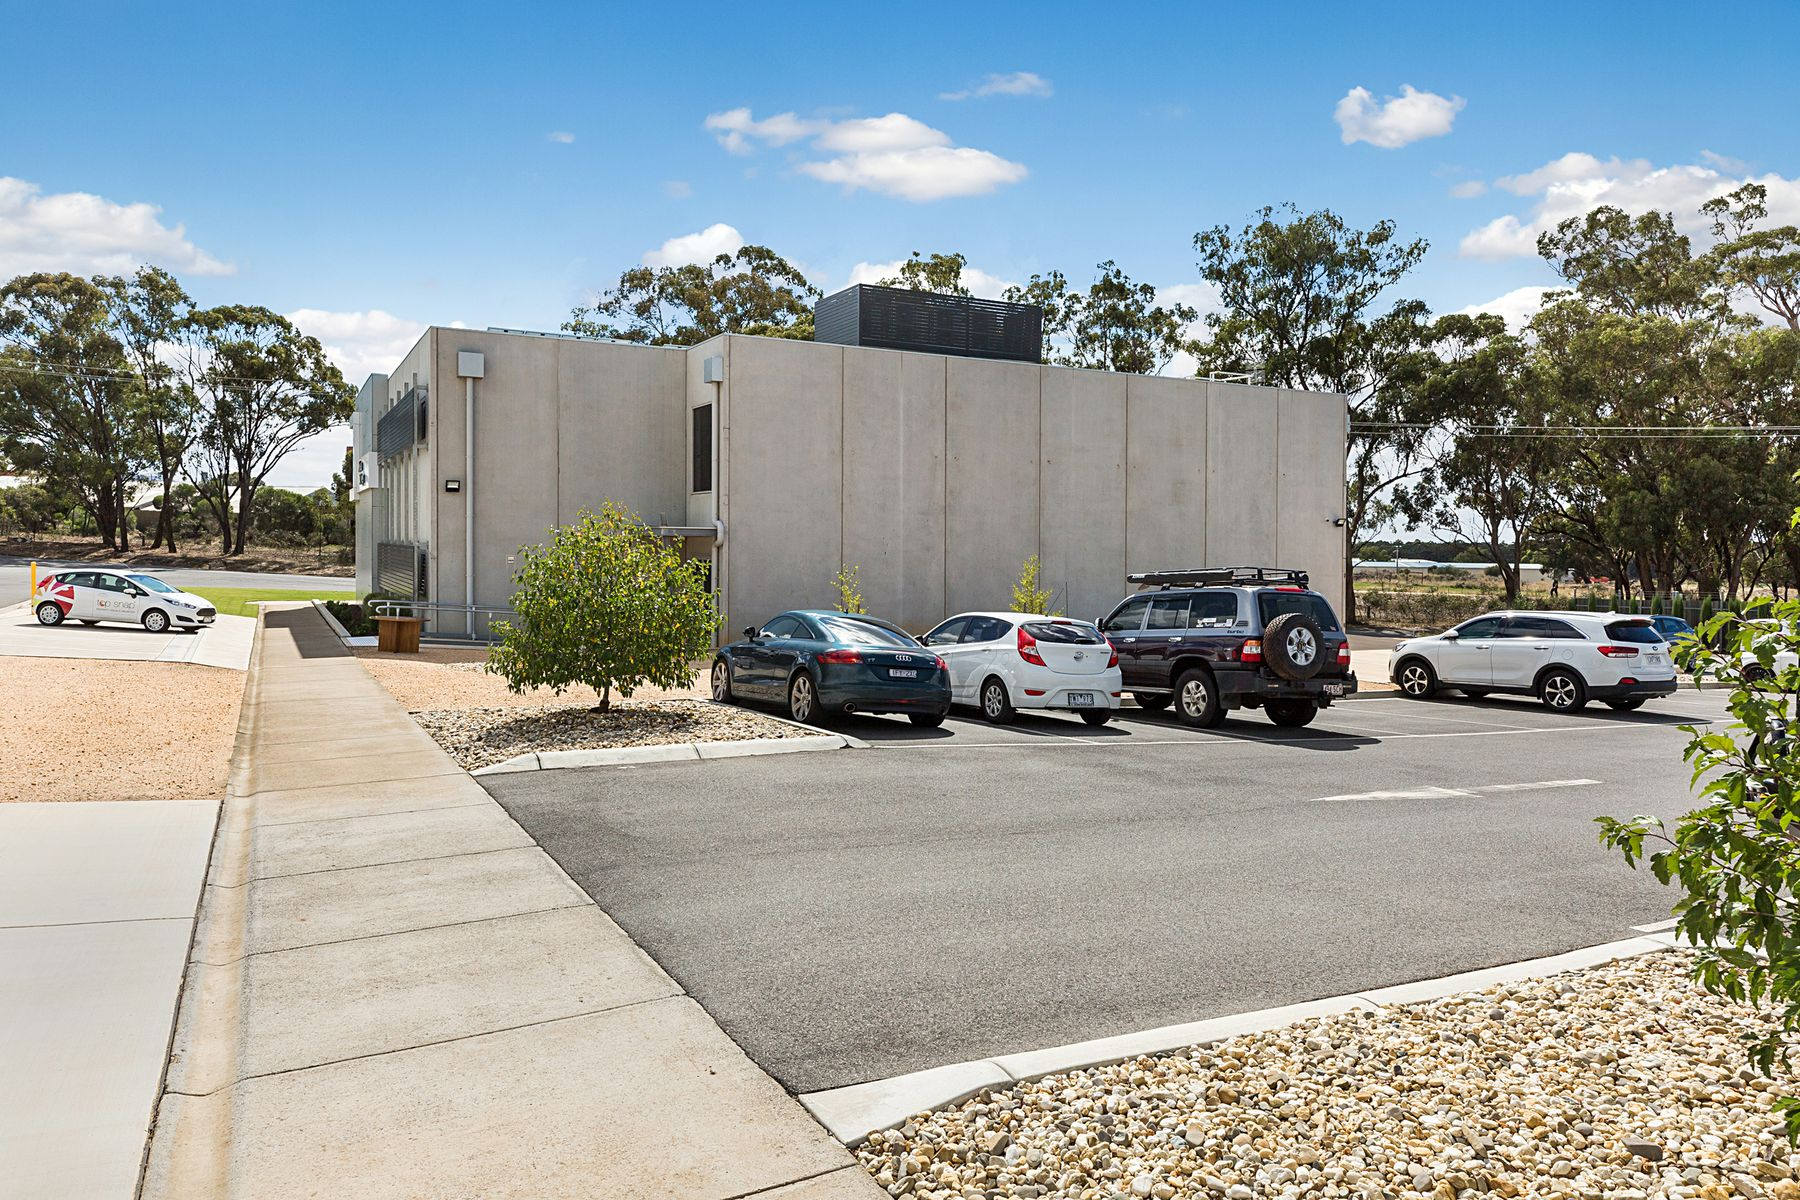 174 Strickland Road, Strathdale, VIC 3550